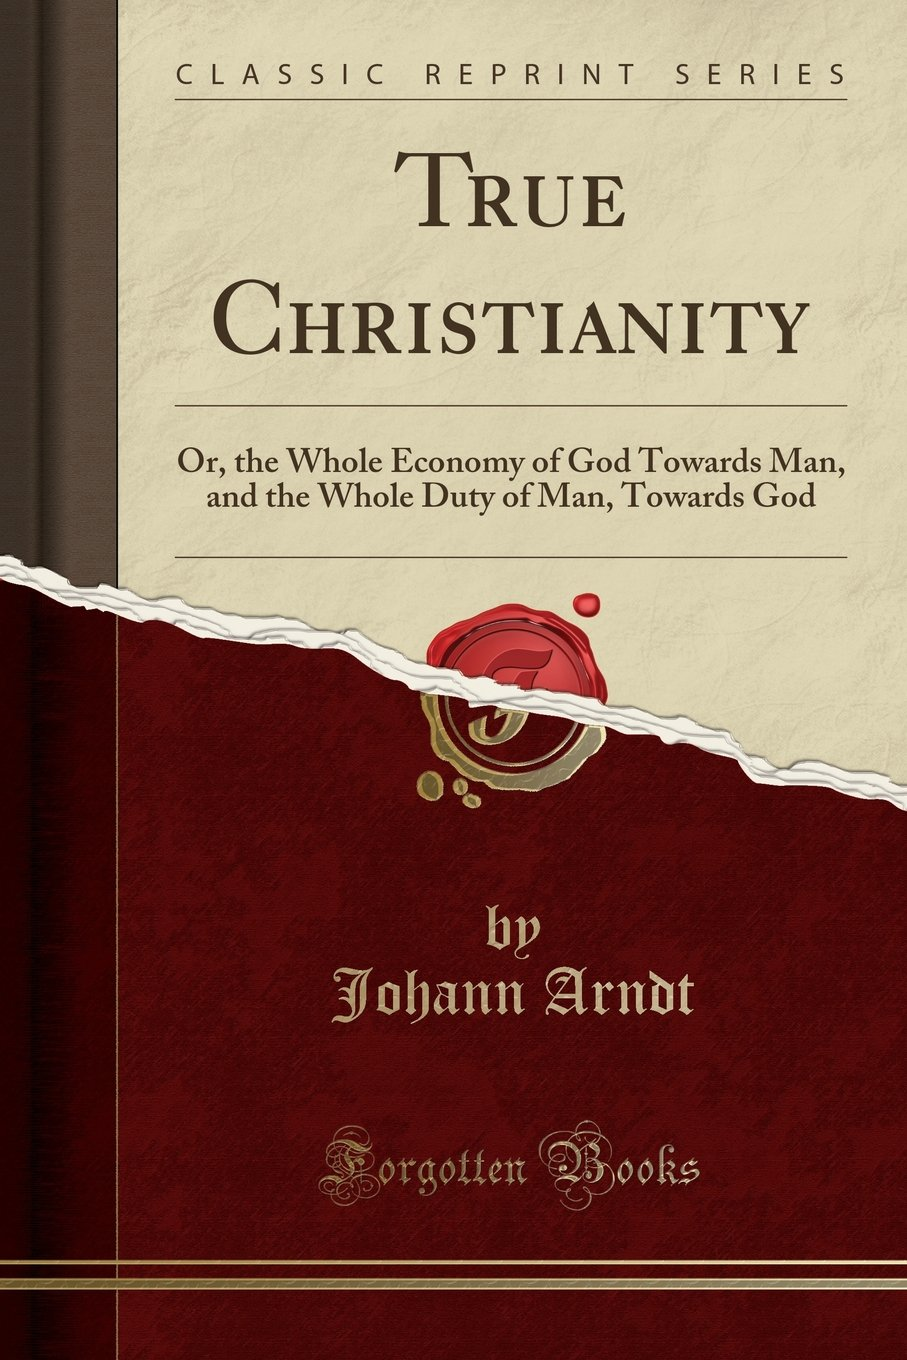 Download True Christianity: Or, the Whole Economy of God Towards Man, and the Whole Duty of Man, Towards God (Classic Reprint) ebook